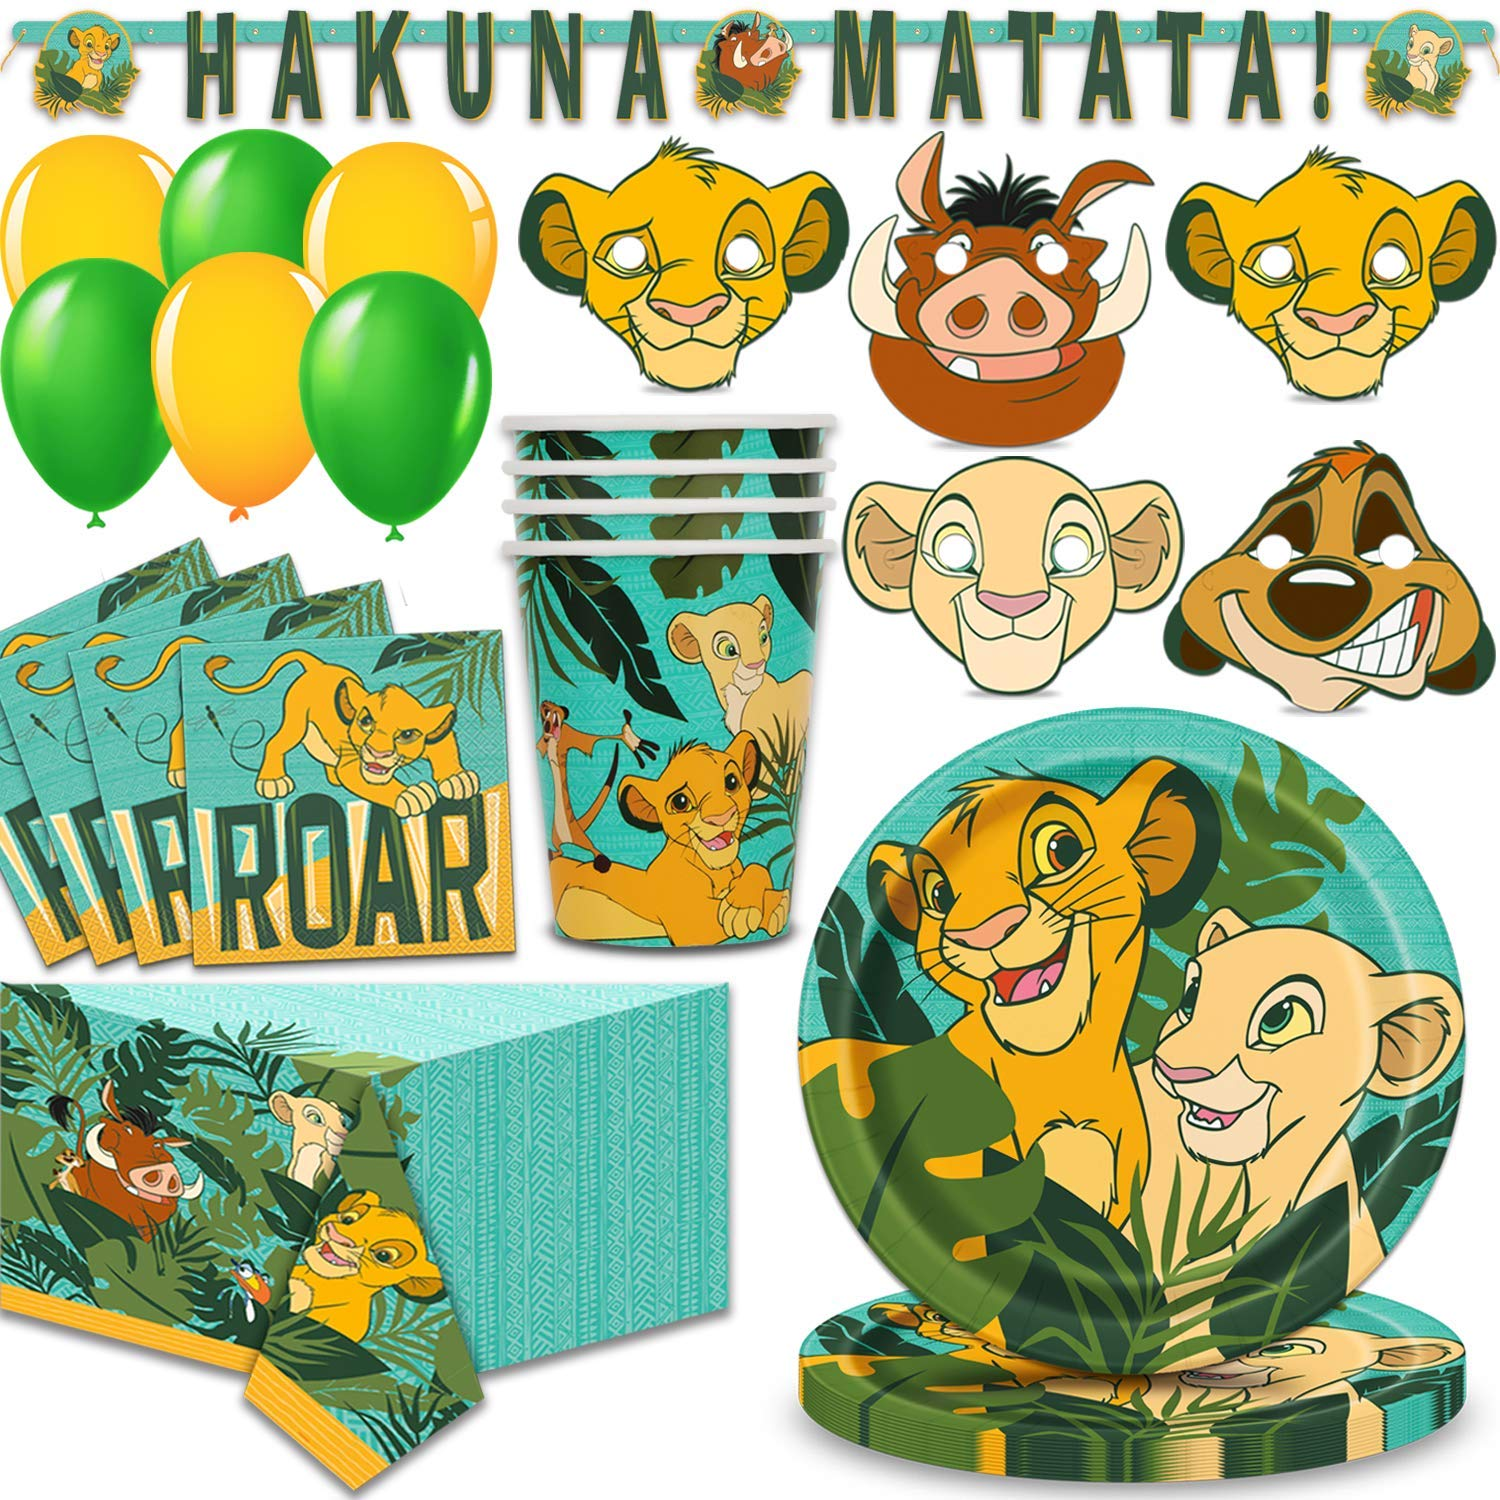 Lion King Party Supplies for 16 - Large Plates, Napkins, 16 Masks, Table Cover, Cups, Hanging Banner, Balloons - Great Disney Decorative Birthday Set with Simba, Timon, Pumbaa, Sarabi, Nala and More! by HeroFiber